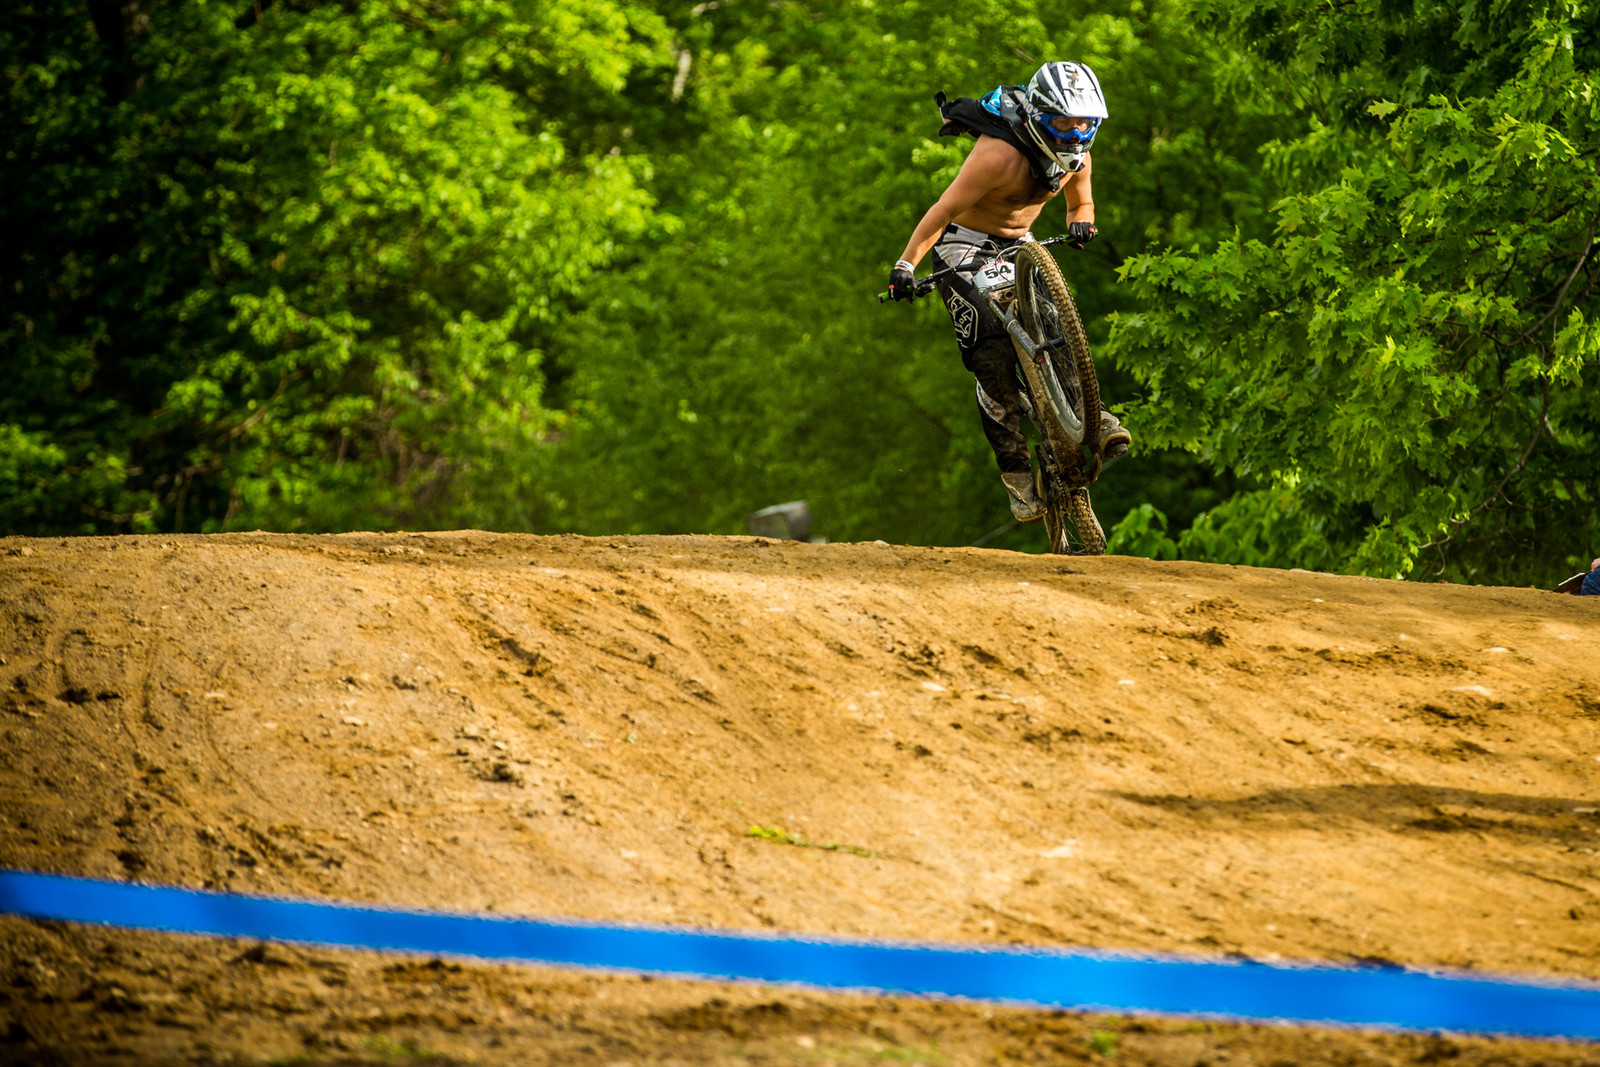 Tyler Puisello - US Open Whip Off! - Mountain Biking Pictures - Vital MTB